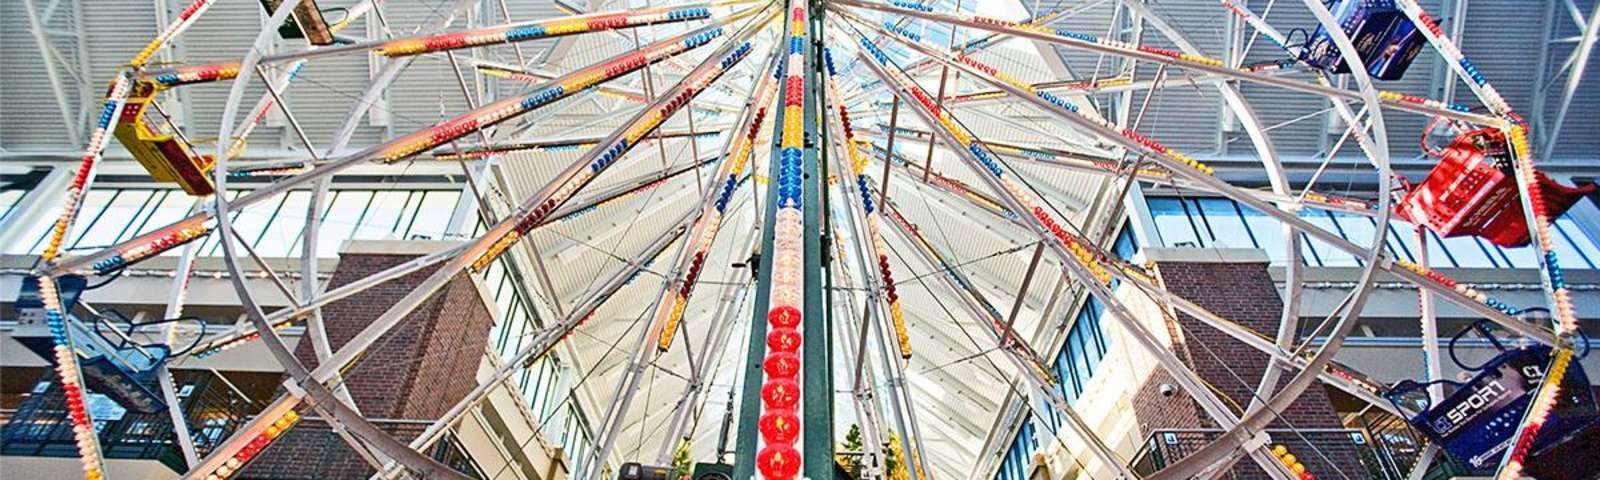 Free Things to Do - Ferris Wheel